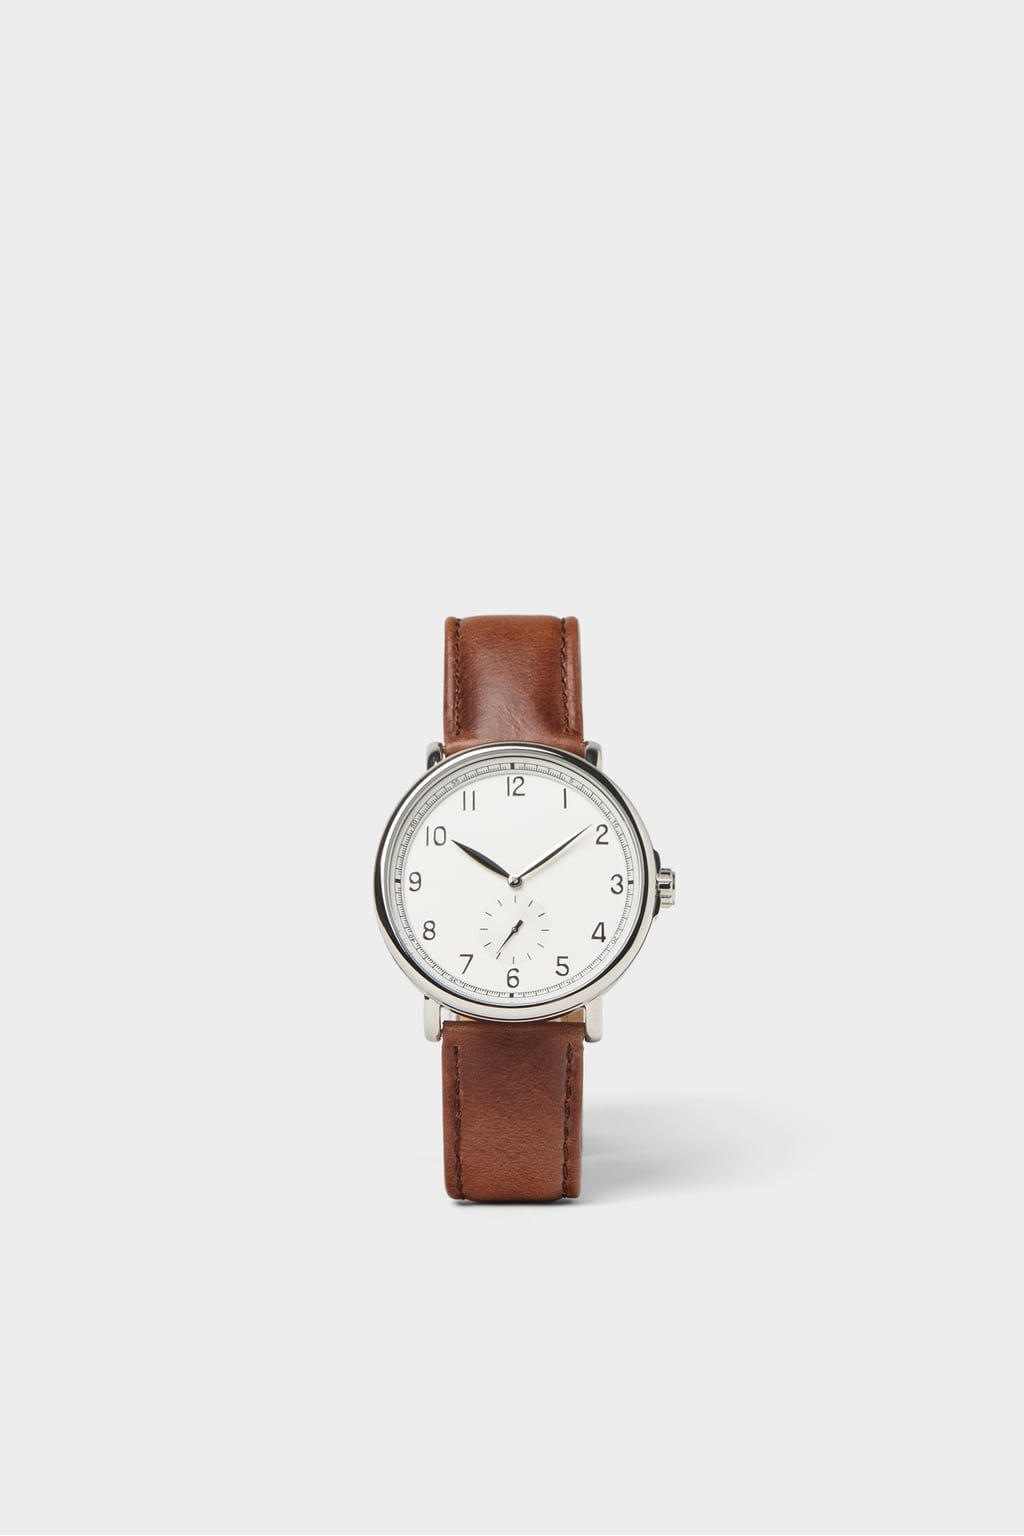 VINTAGE LOOK WATCH WITH BROWN LEATHER STRAP - NEW IN-MAN | ZARA United Kingdom